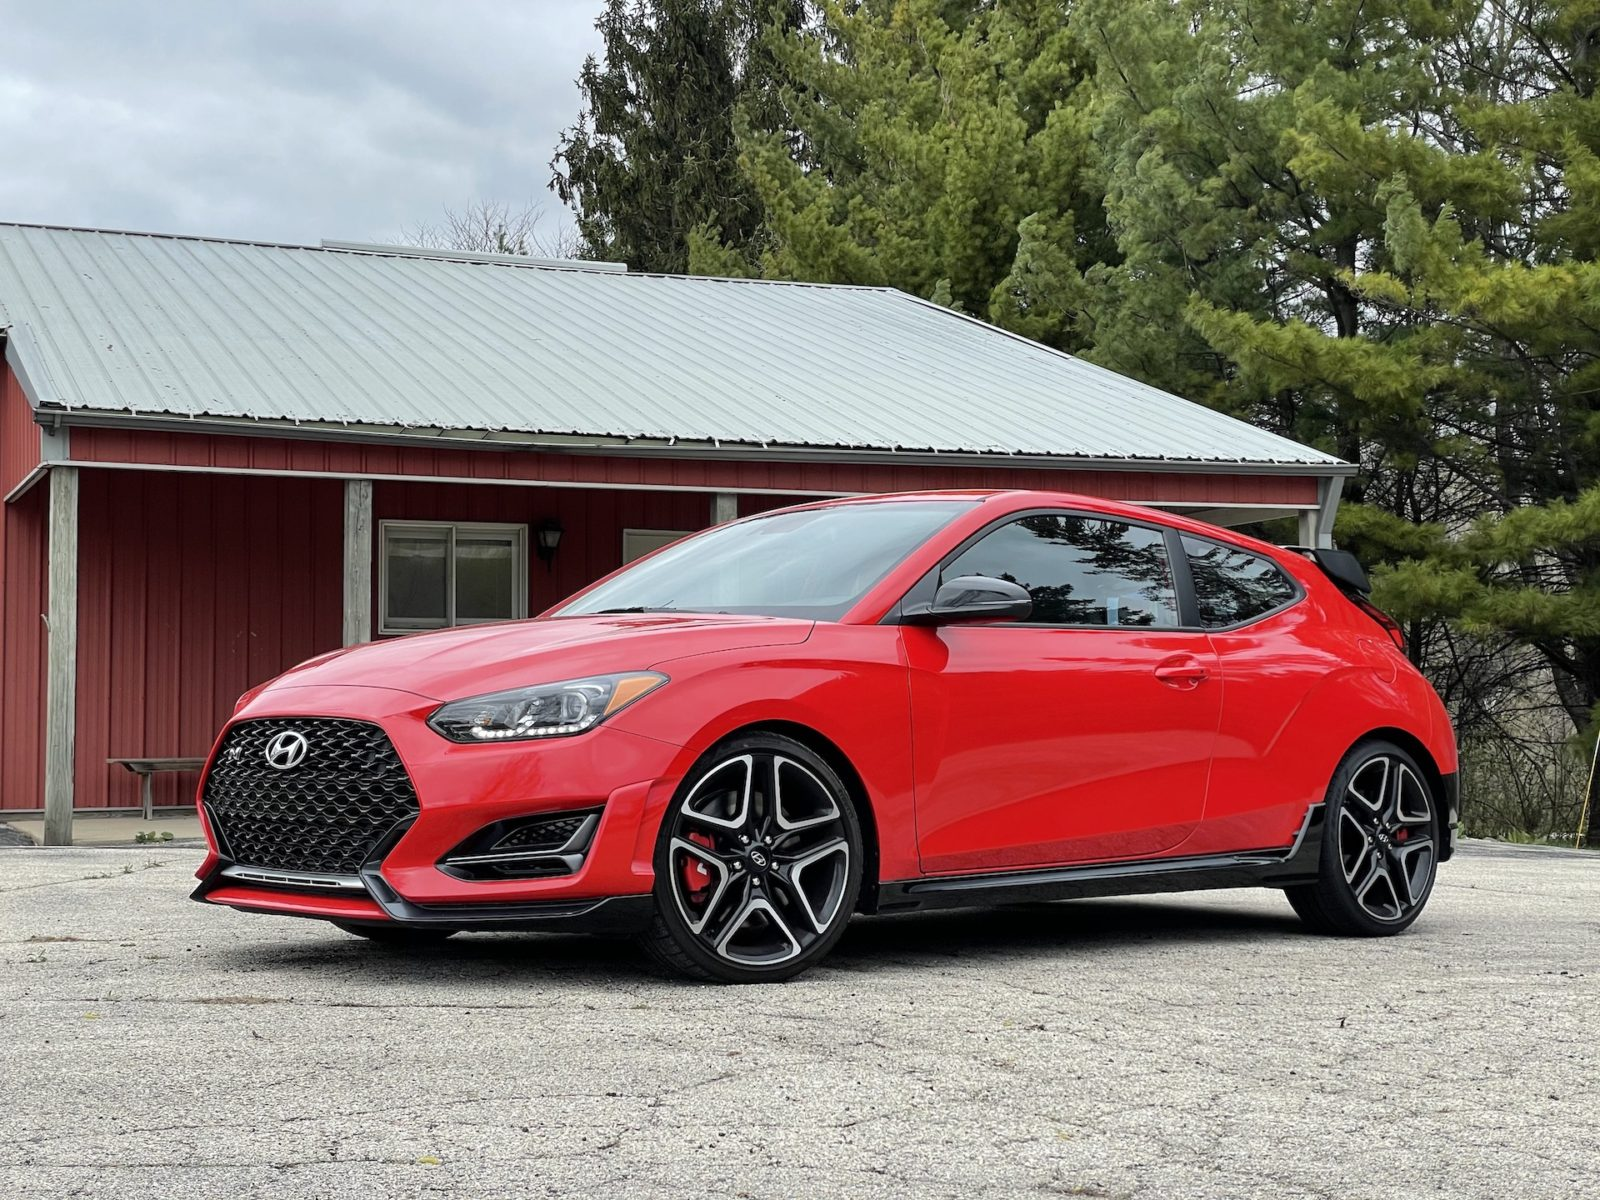 first-drive-review:-2021-hyundai-veloster-n-builds-hot-hatch-credibility-with-8-speed-dual-clutch-transmission